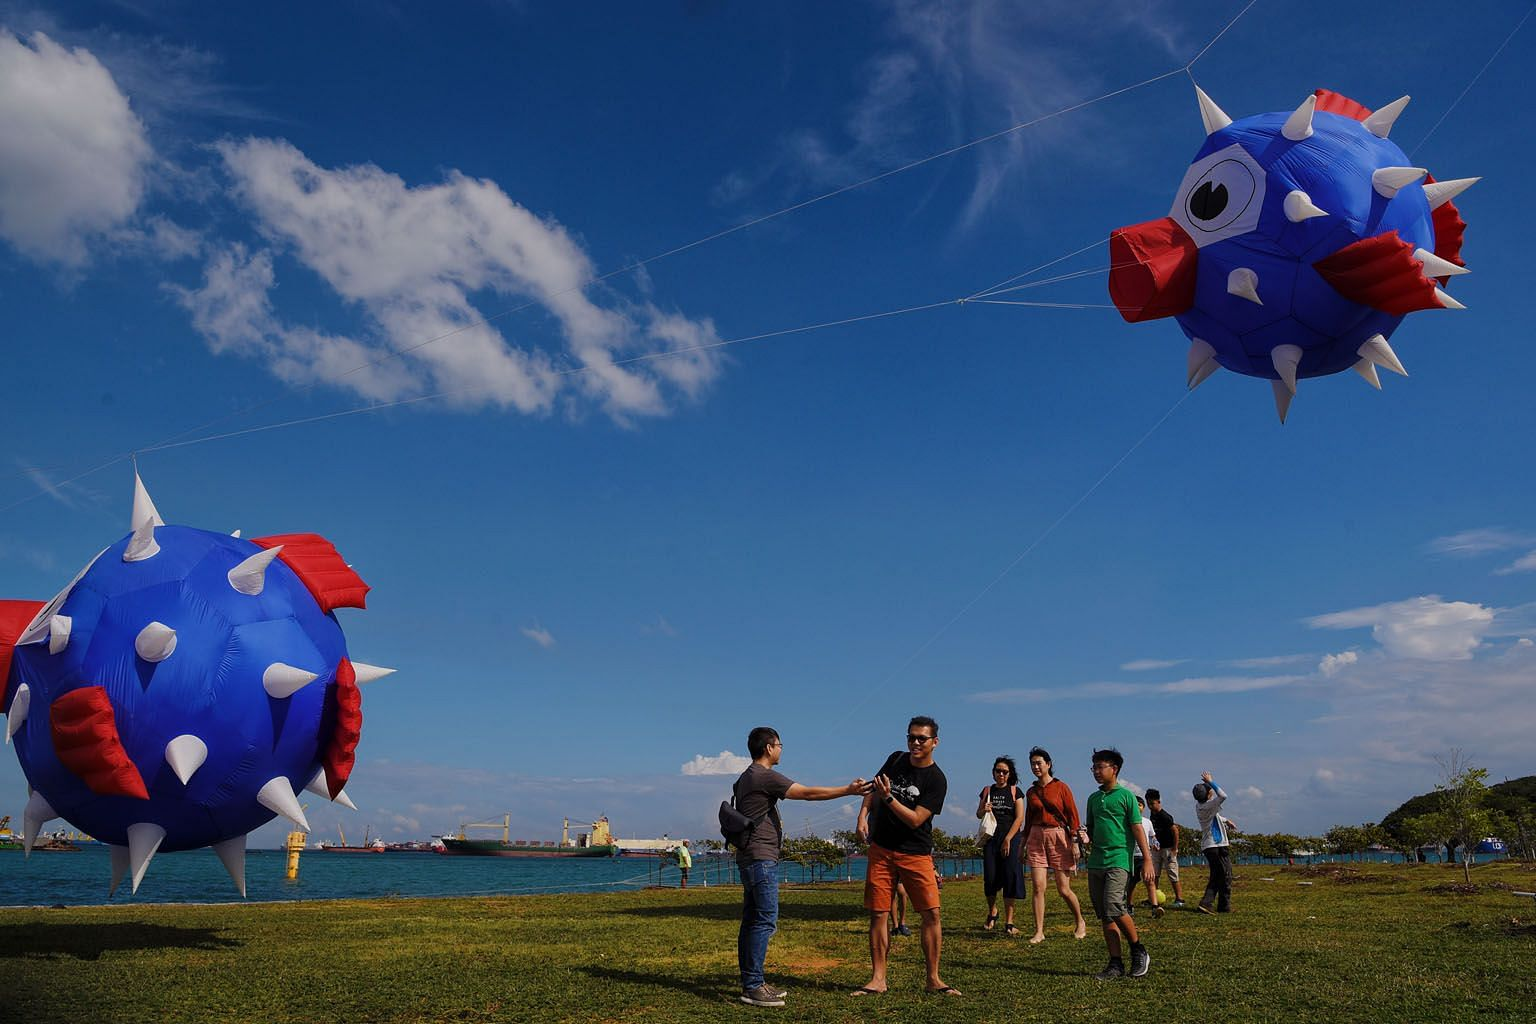 Giant kites designed to look like pufferfish at Marina Barrage on March 15. Most of South-east Asia, including Singapore, experienced dry and warm conditions last month. Singapore recorded daily maximum temperatures that exceeded 34 deg C for 27 days